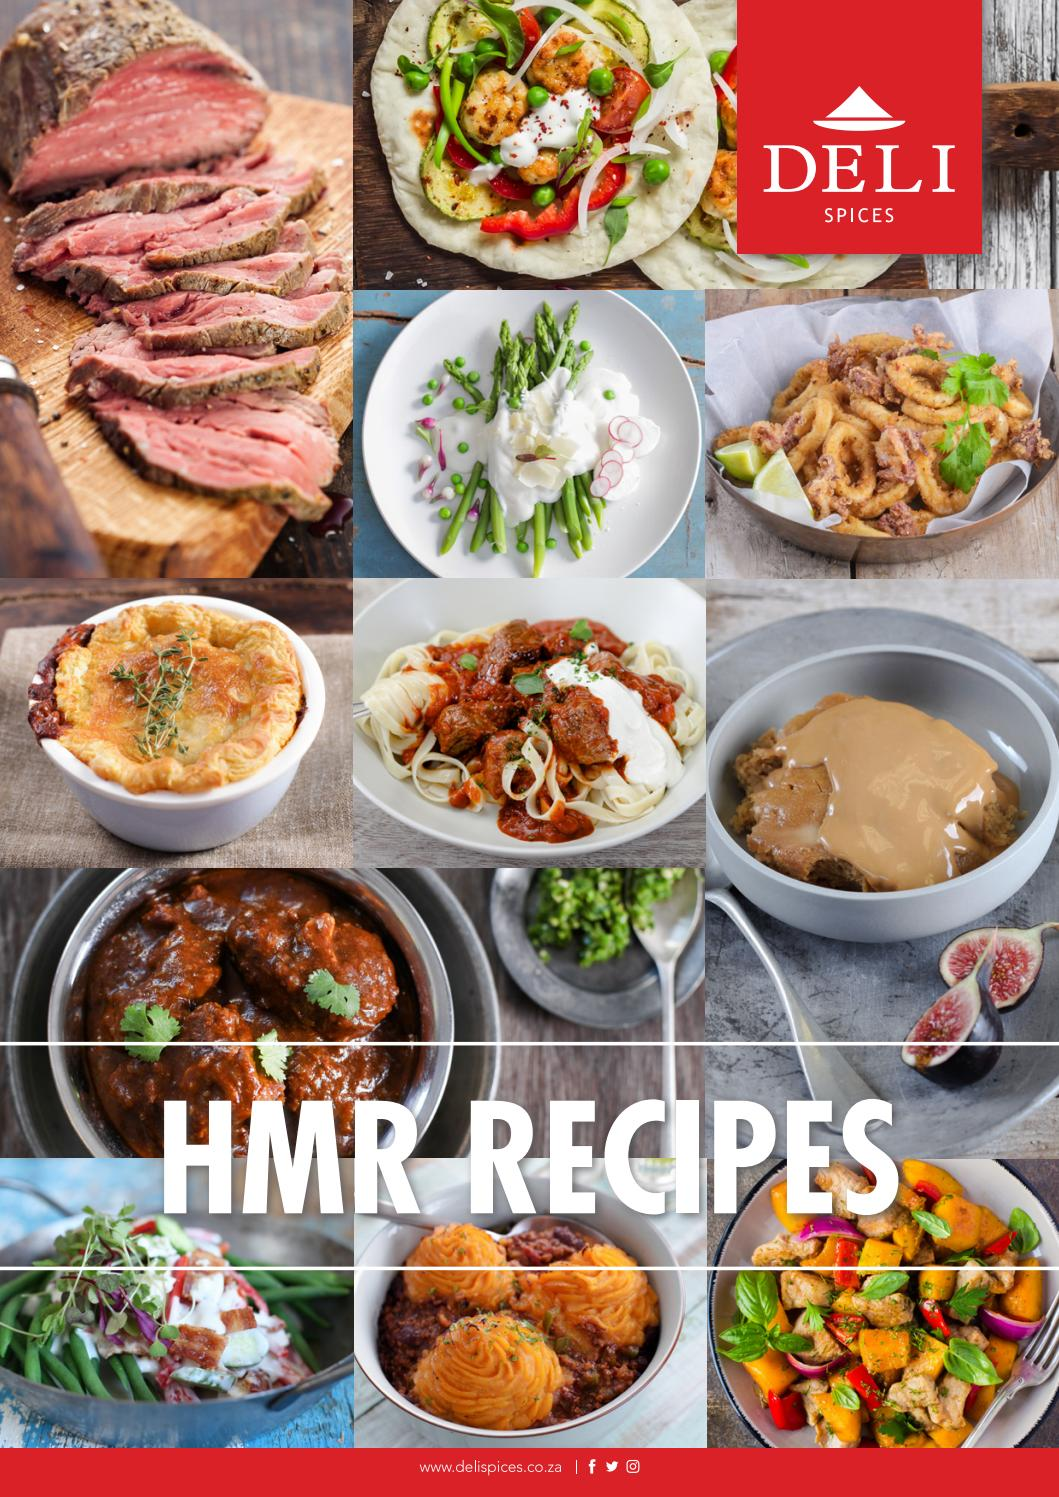 Hmr Recipes By Deli Spices Issuu